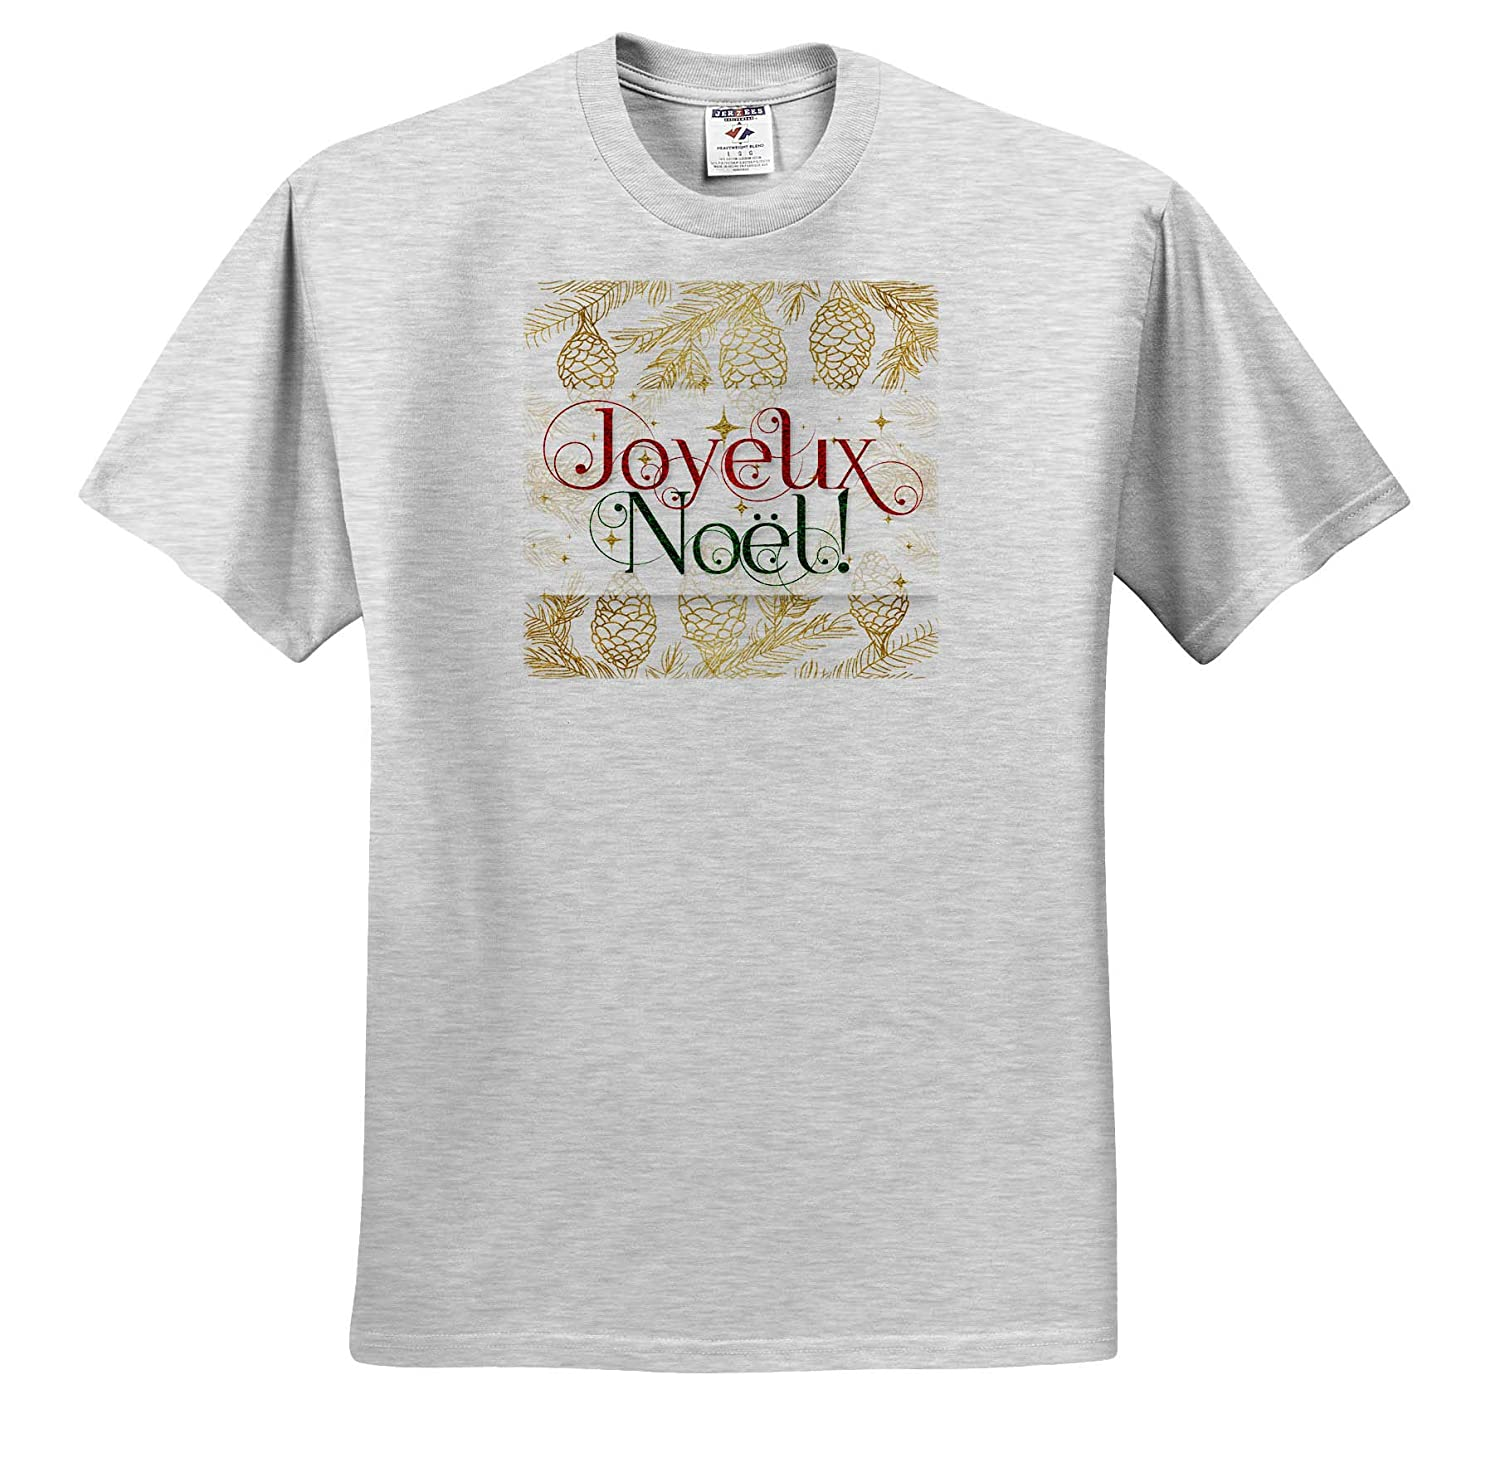 3dRose Doreen Erhardt Christmas Collection Joyeux Noel French Christmas Image of Red Green and Gold T-Shirts